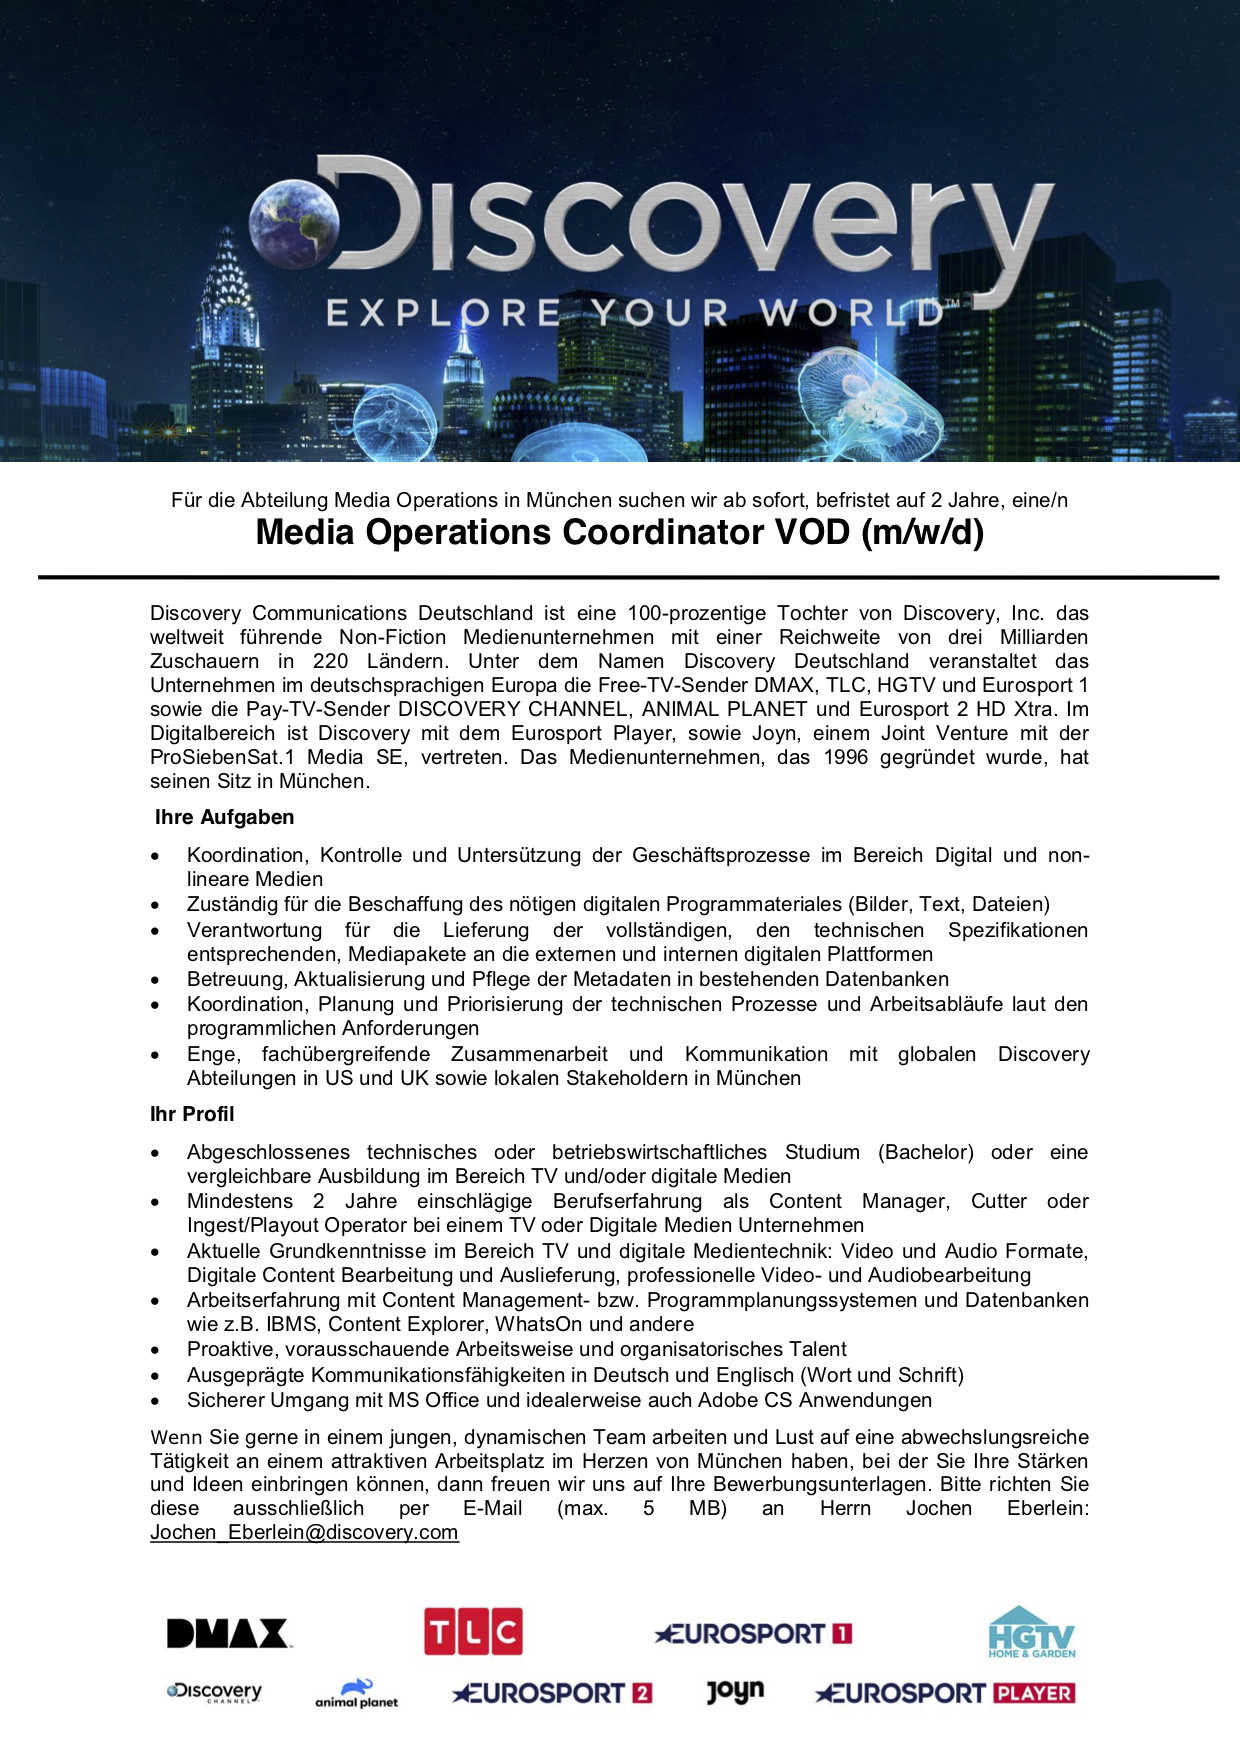 Media Operations Coordination VoD (m/w/d)